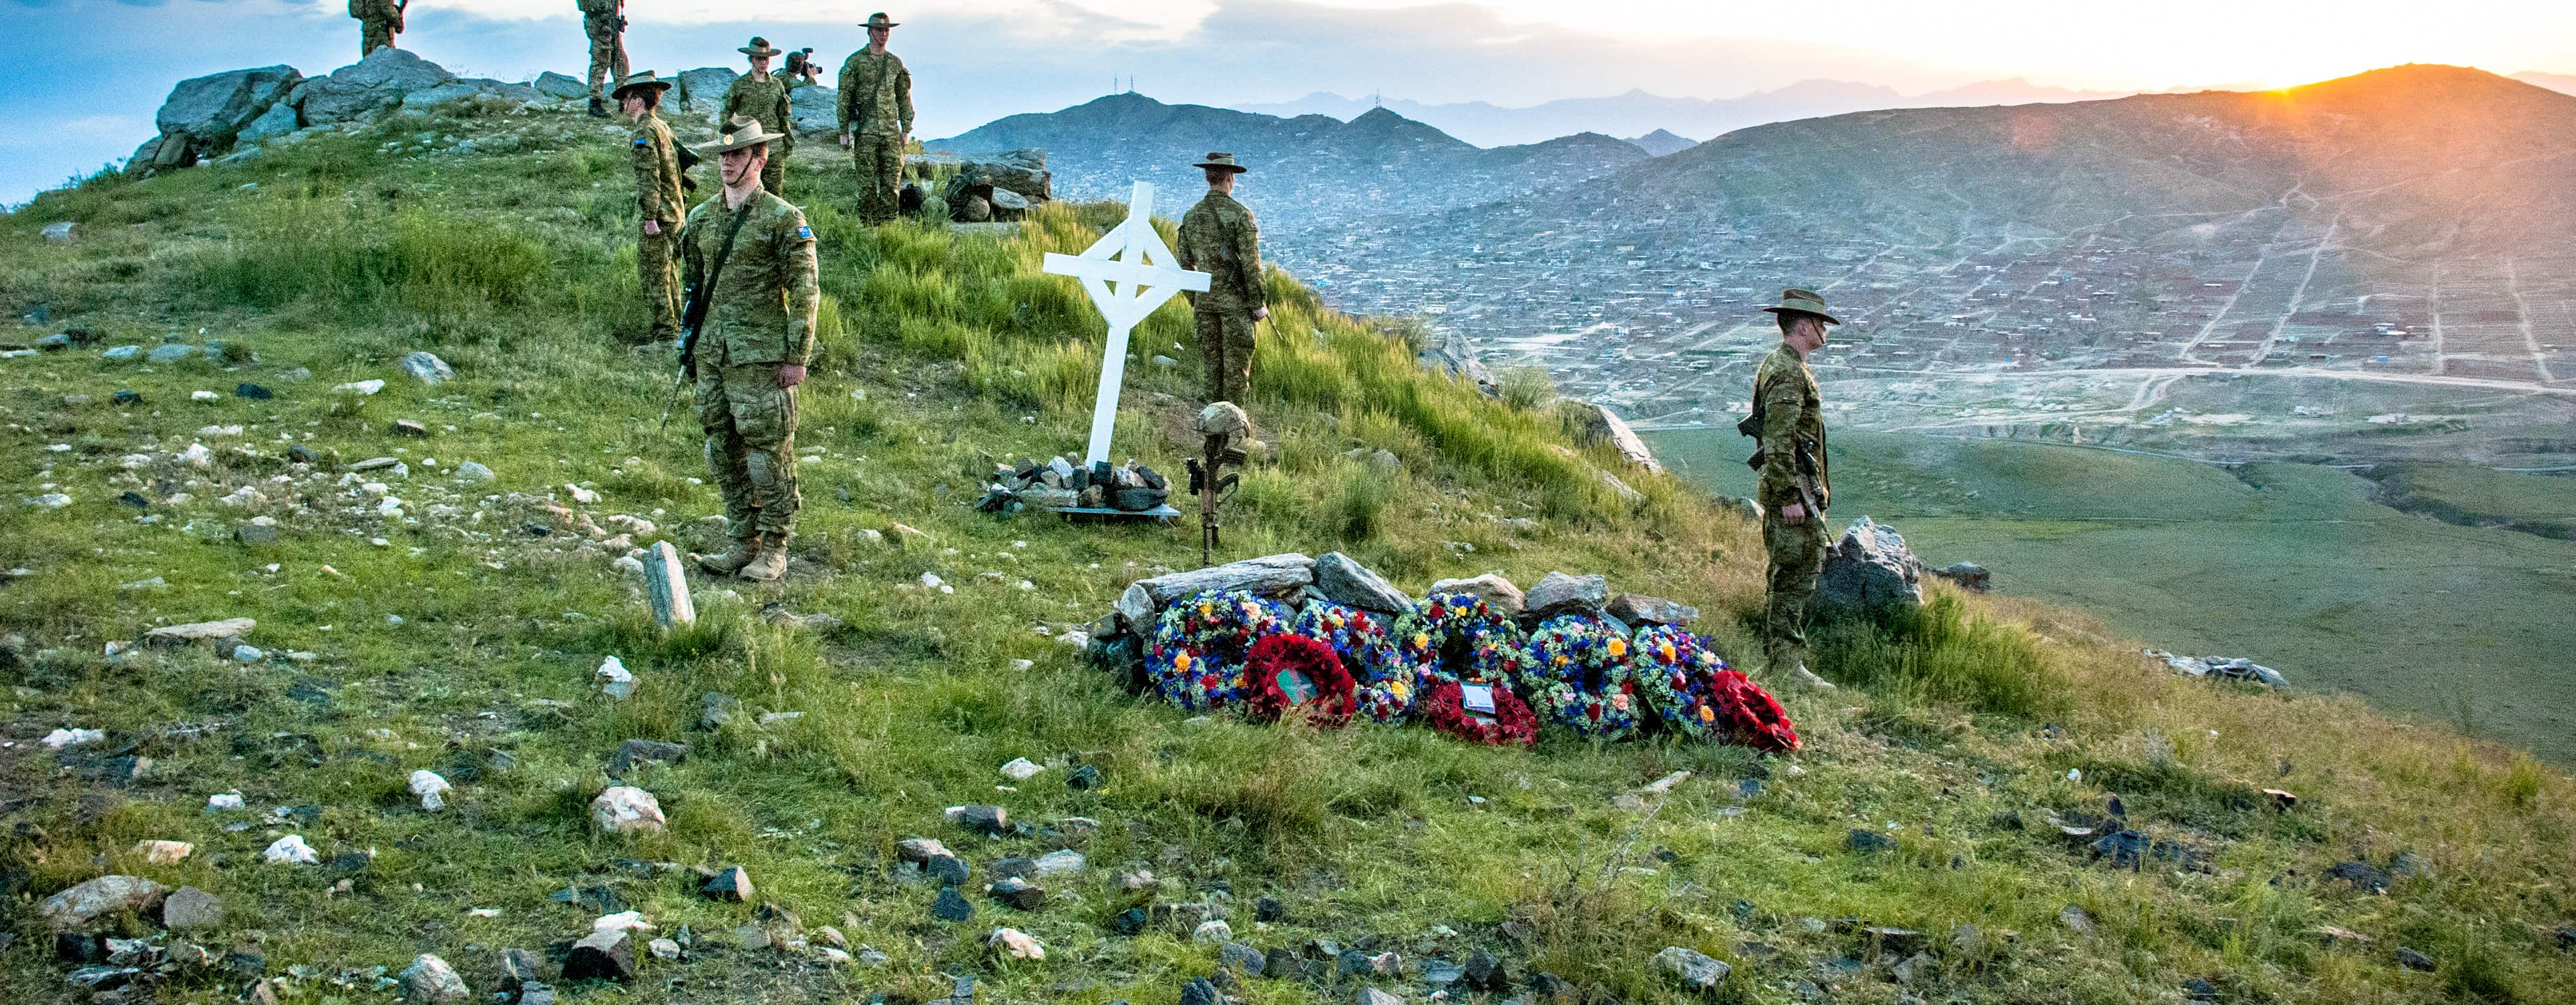 An Anzac Day dawn service on the outskirts of Kabul, Afghanistan, 2016 (Photo: Commonwealth of Australia)